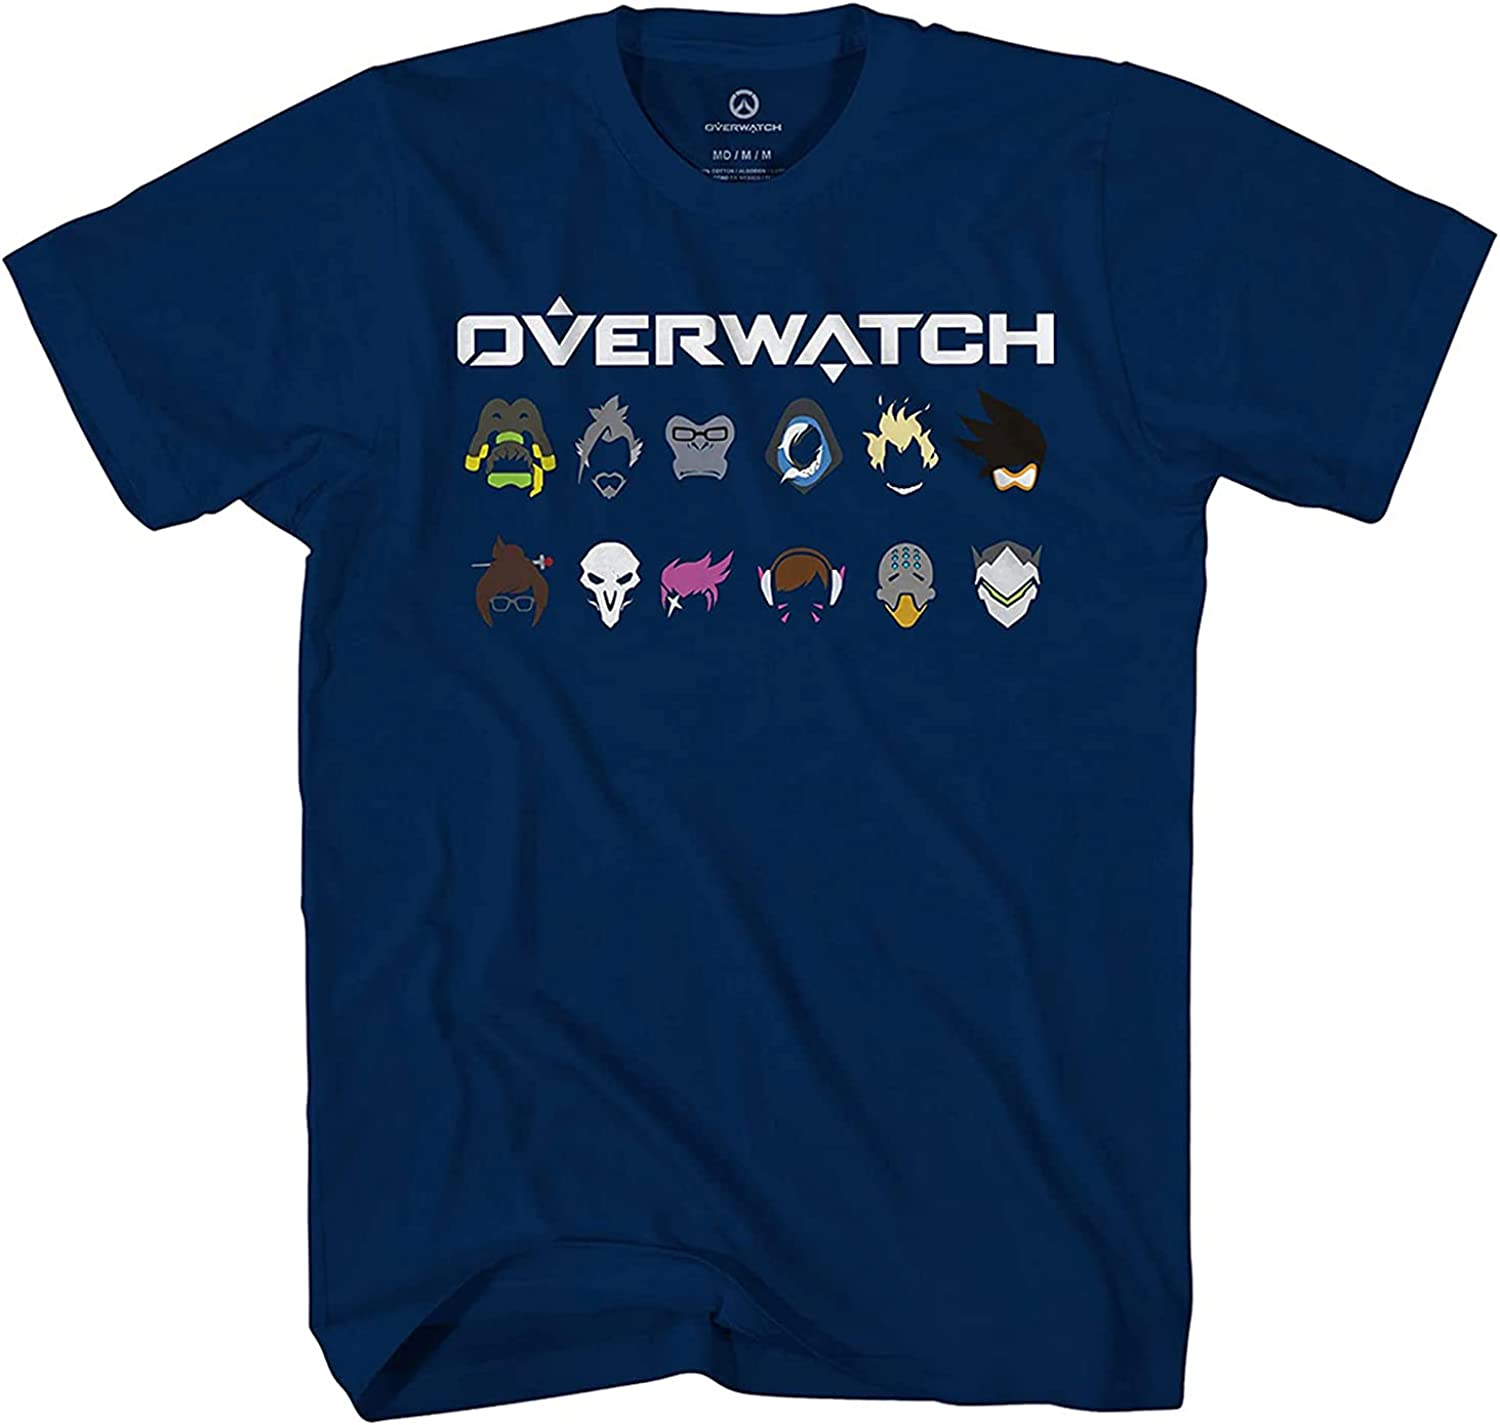 6. Overwatch Men's Video Game Official T-Shirt - The World Needs Heroes